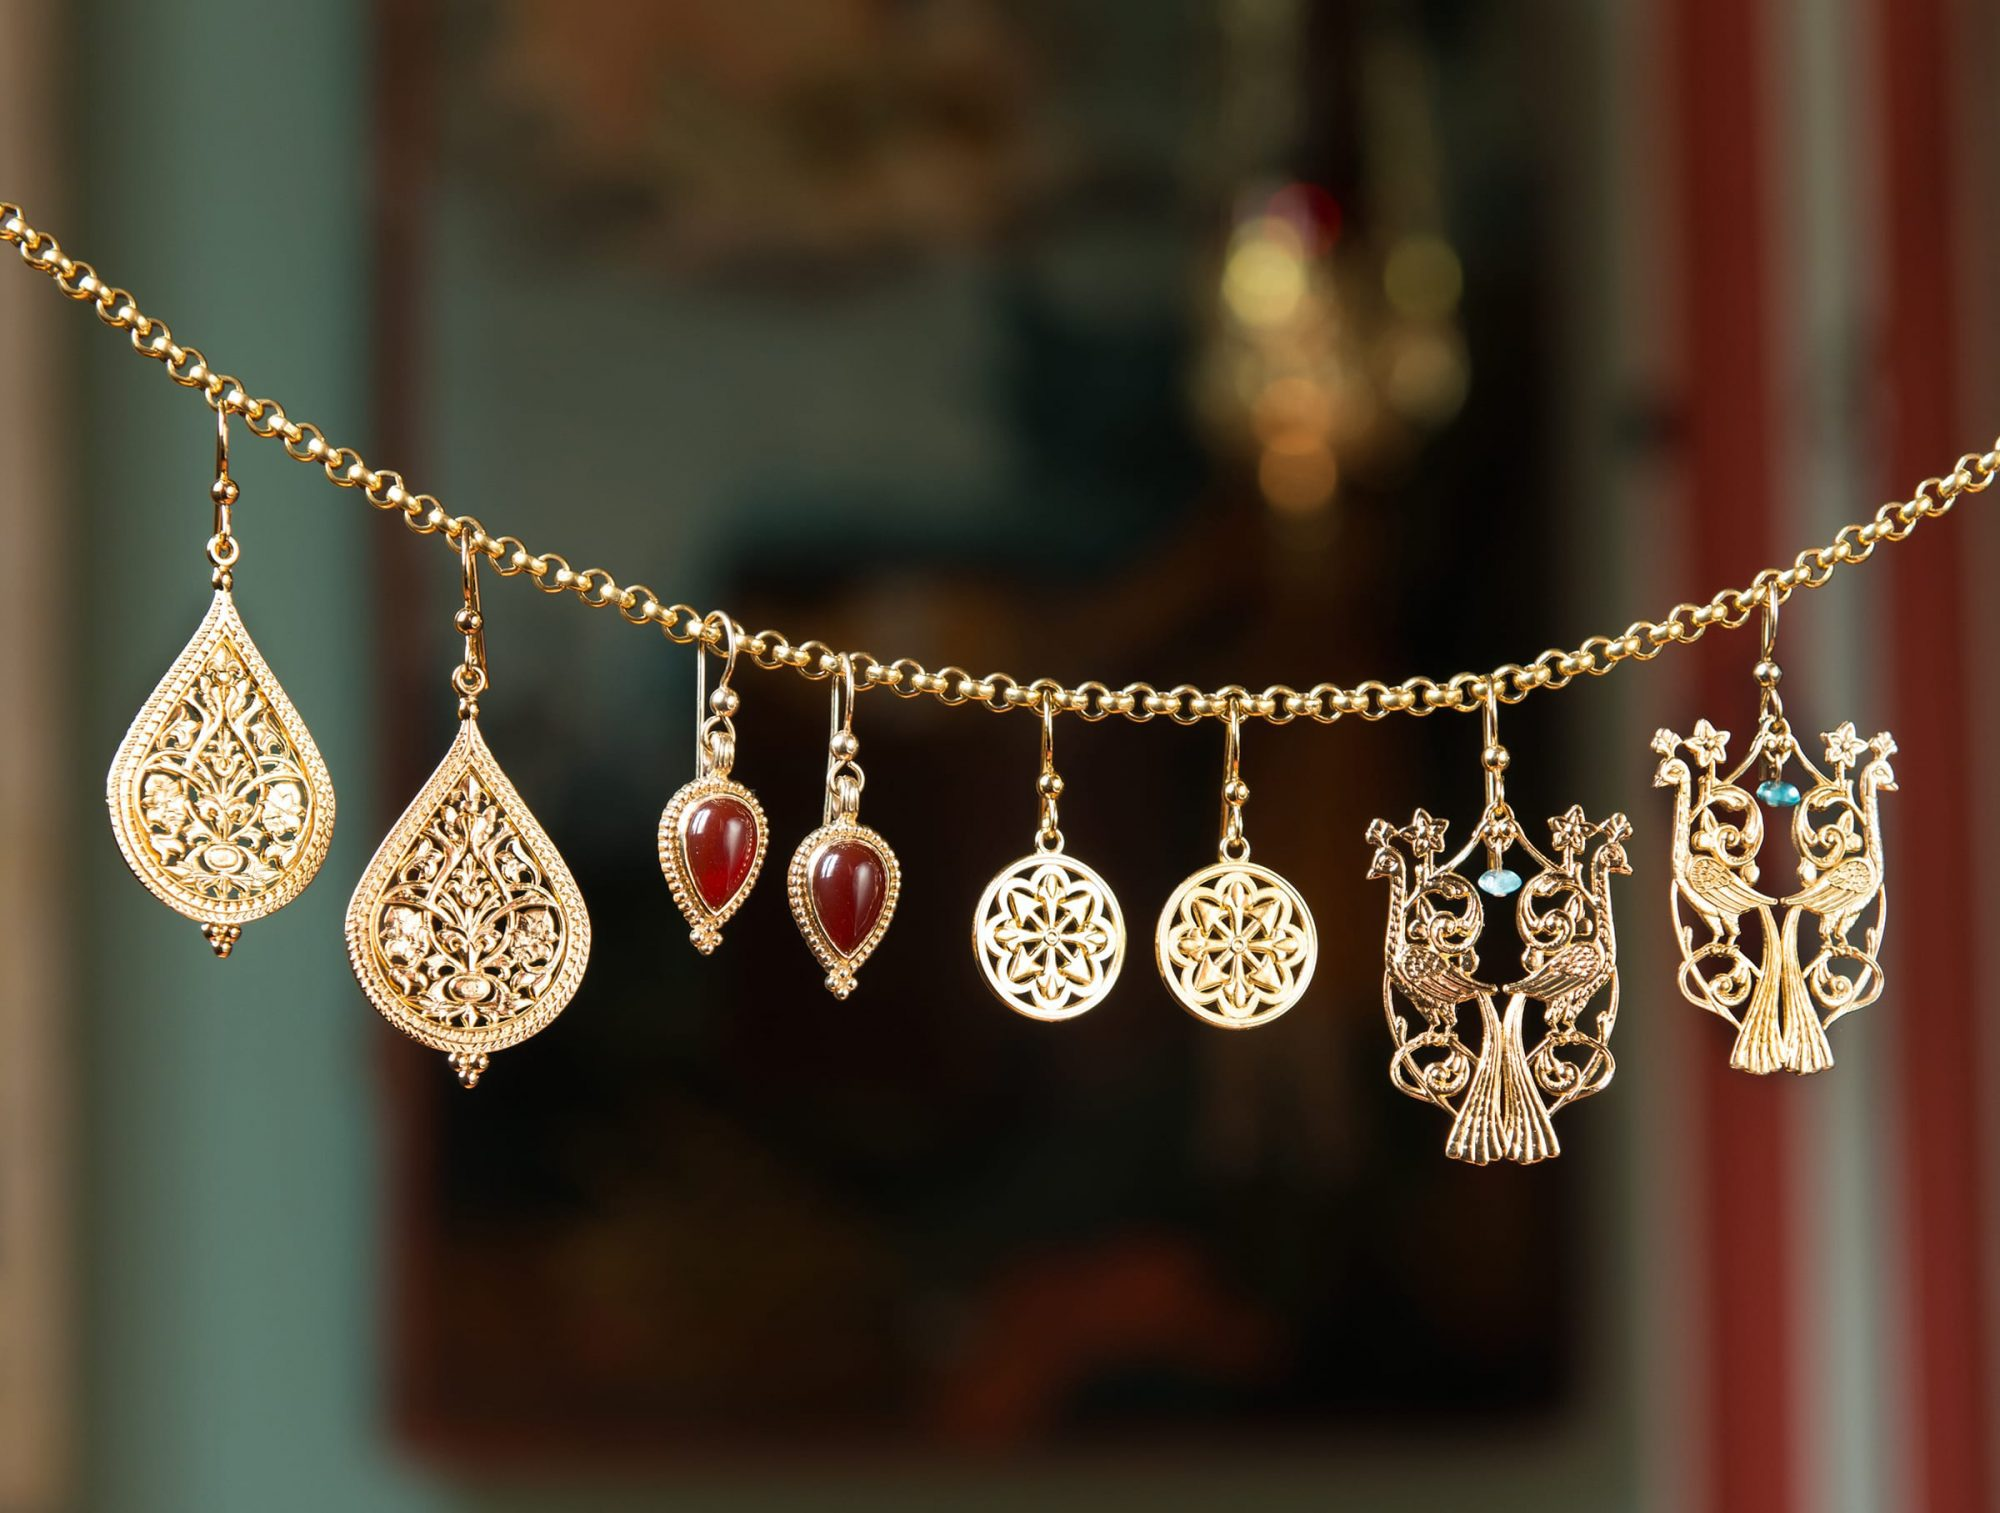 Byzantine Baubles The History Of Jewelry Gallery Byzantium